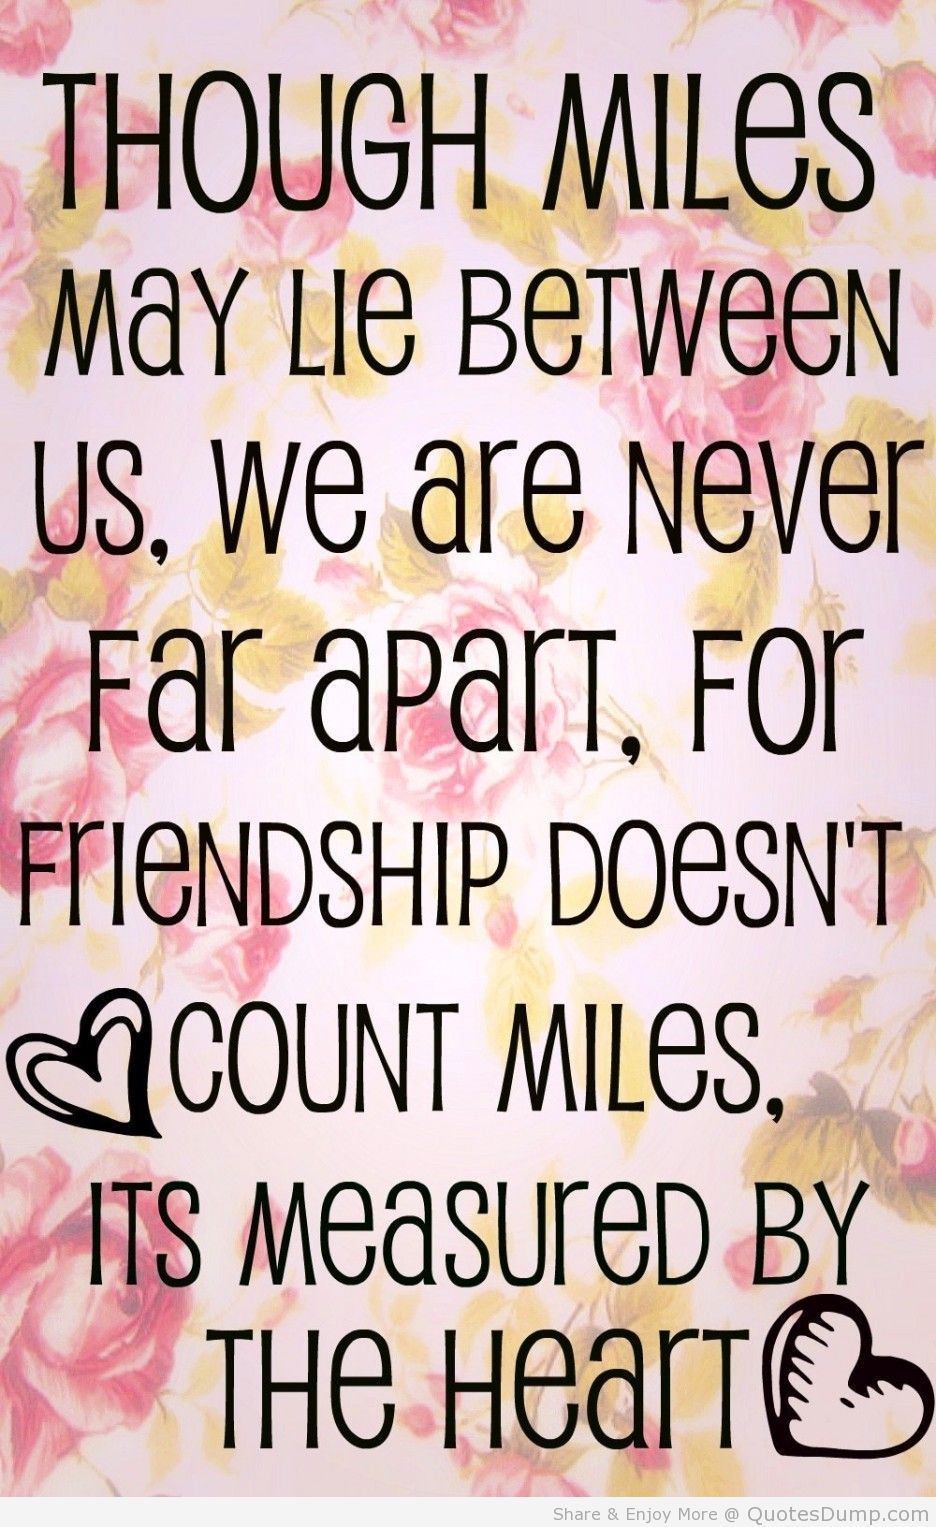 friendship Quotes long distance friendship quote in cute floral